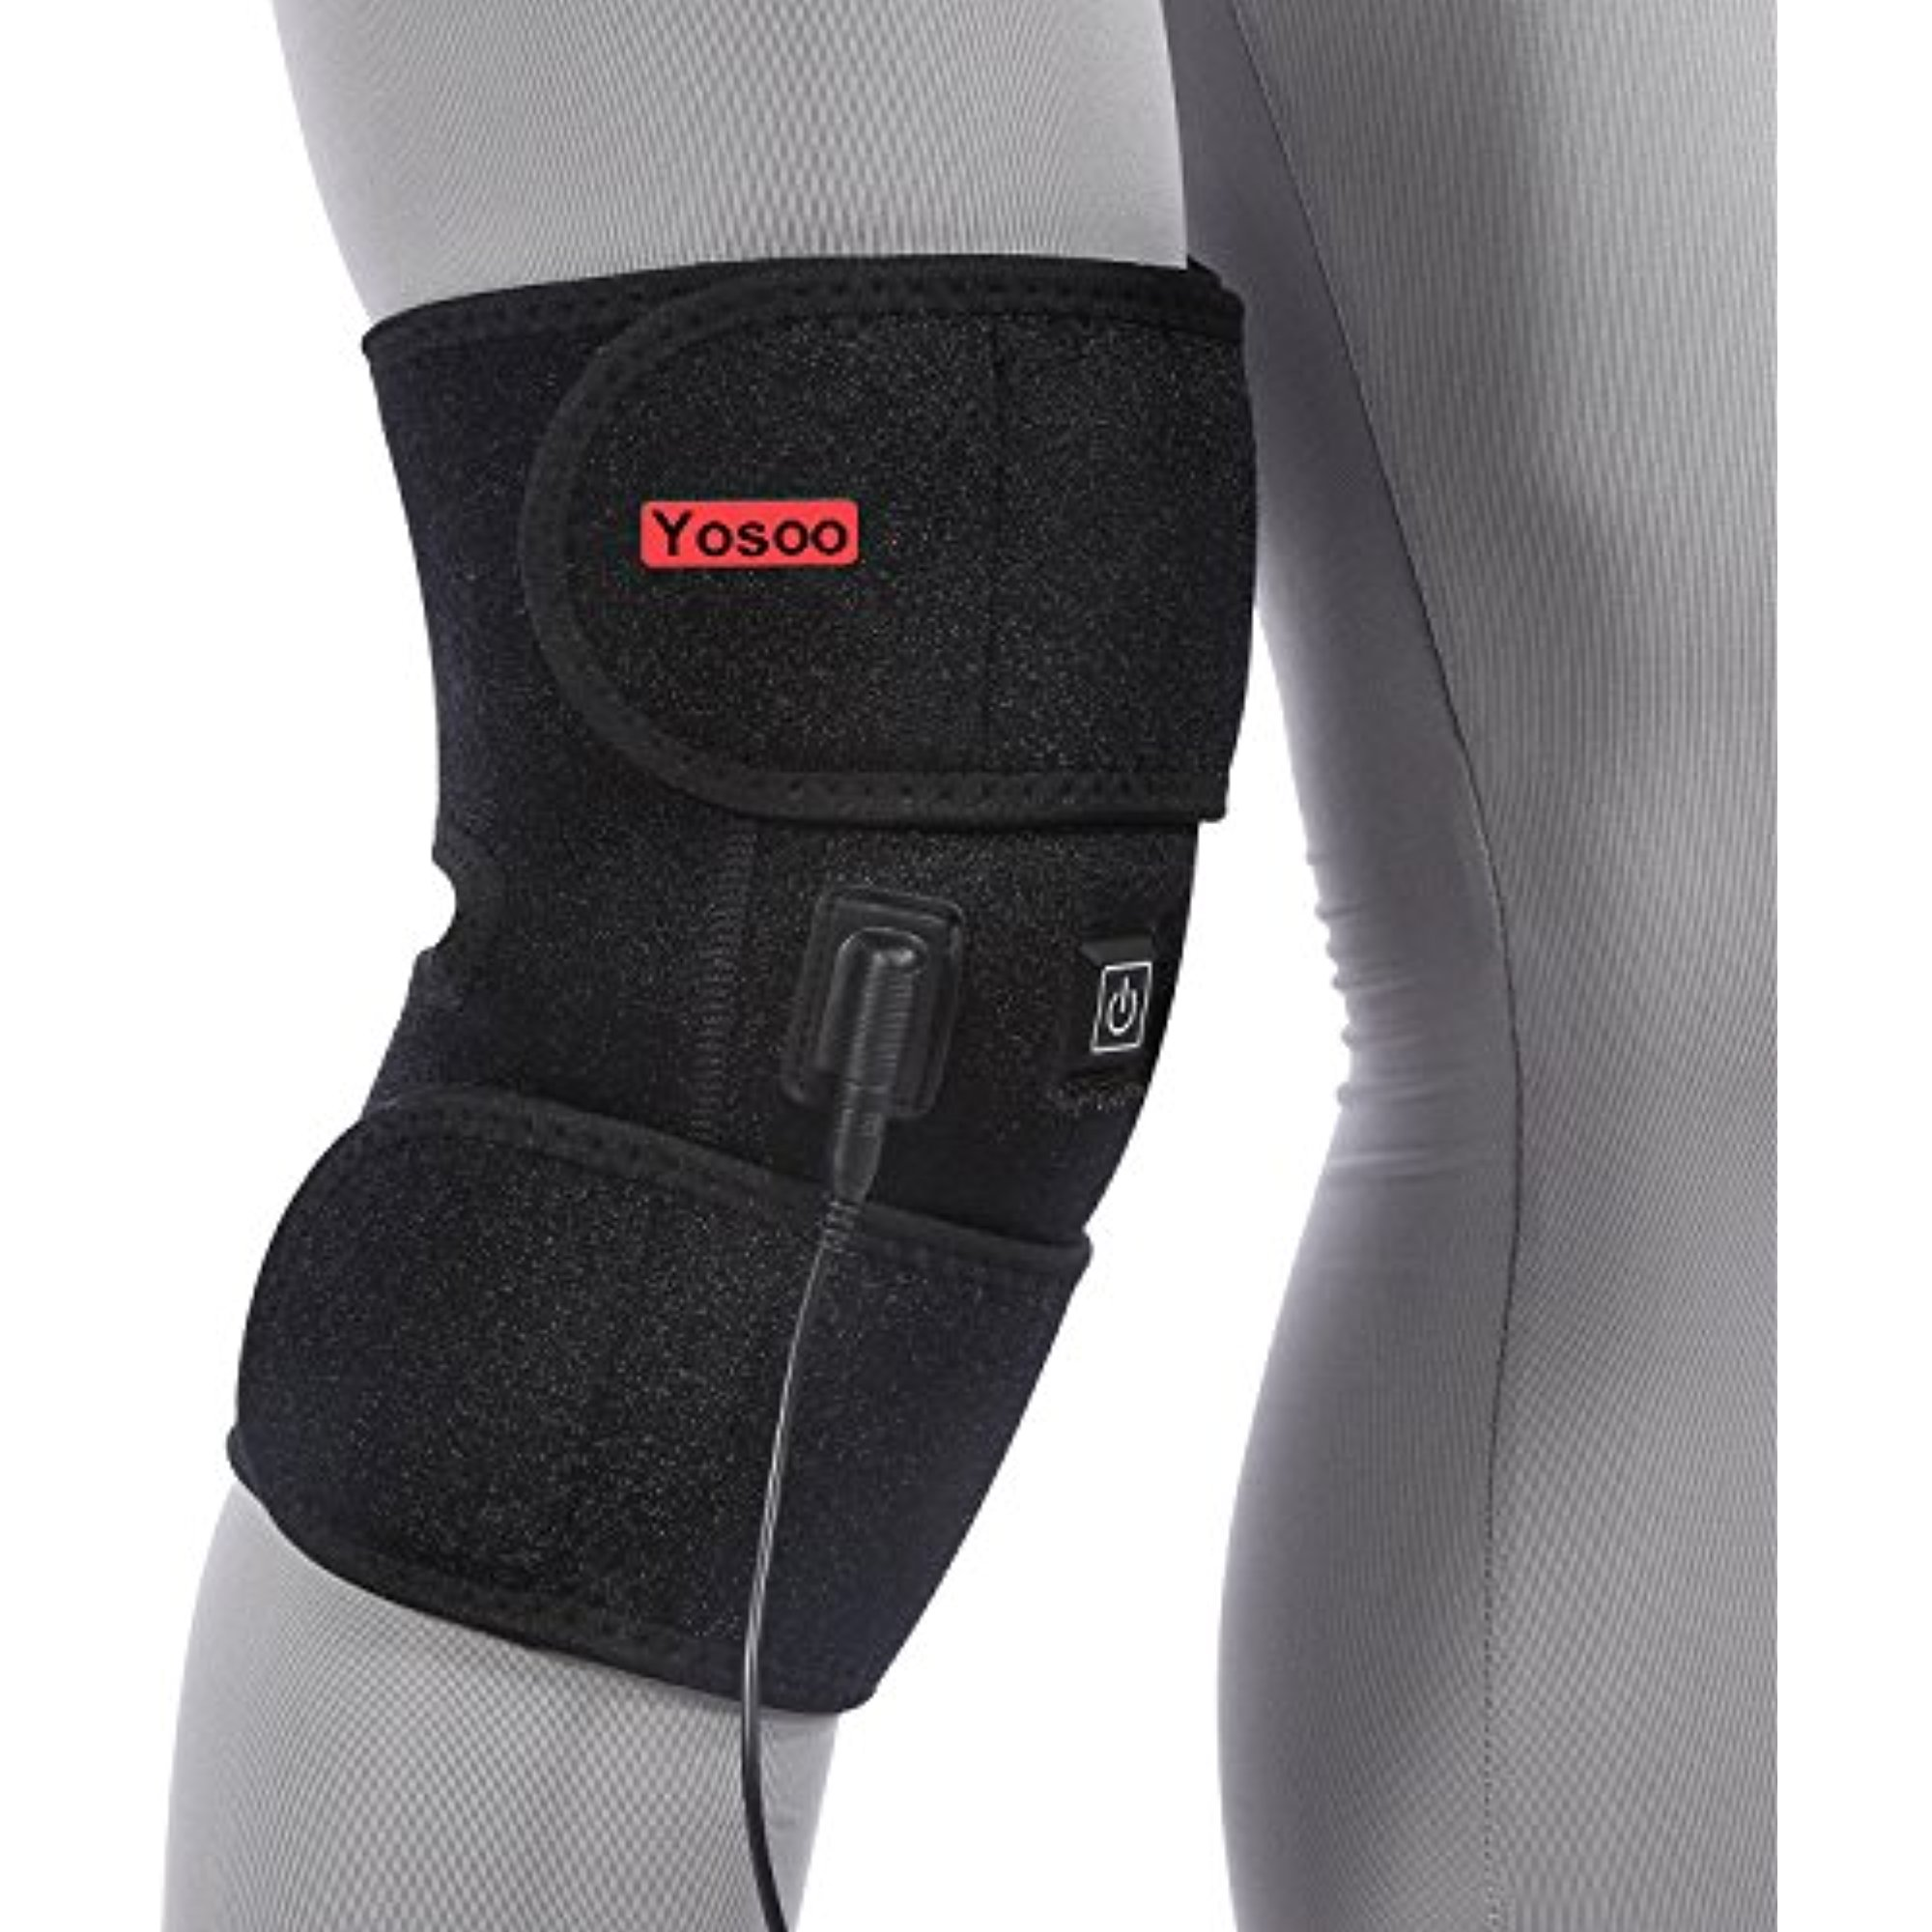 Yosoo Heated Pad Heat Therapy Knee Wrap Brace Thermotherapy Heating Pad with Pocket